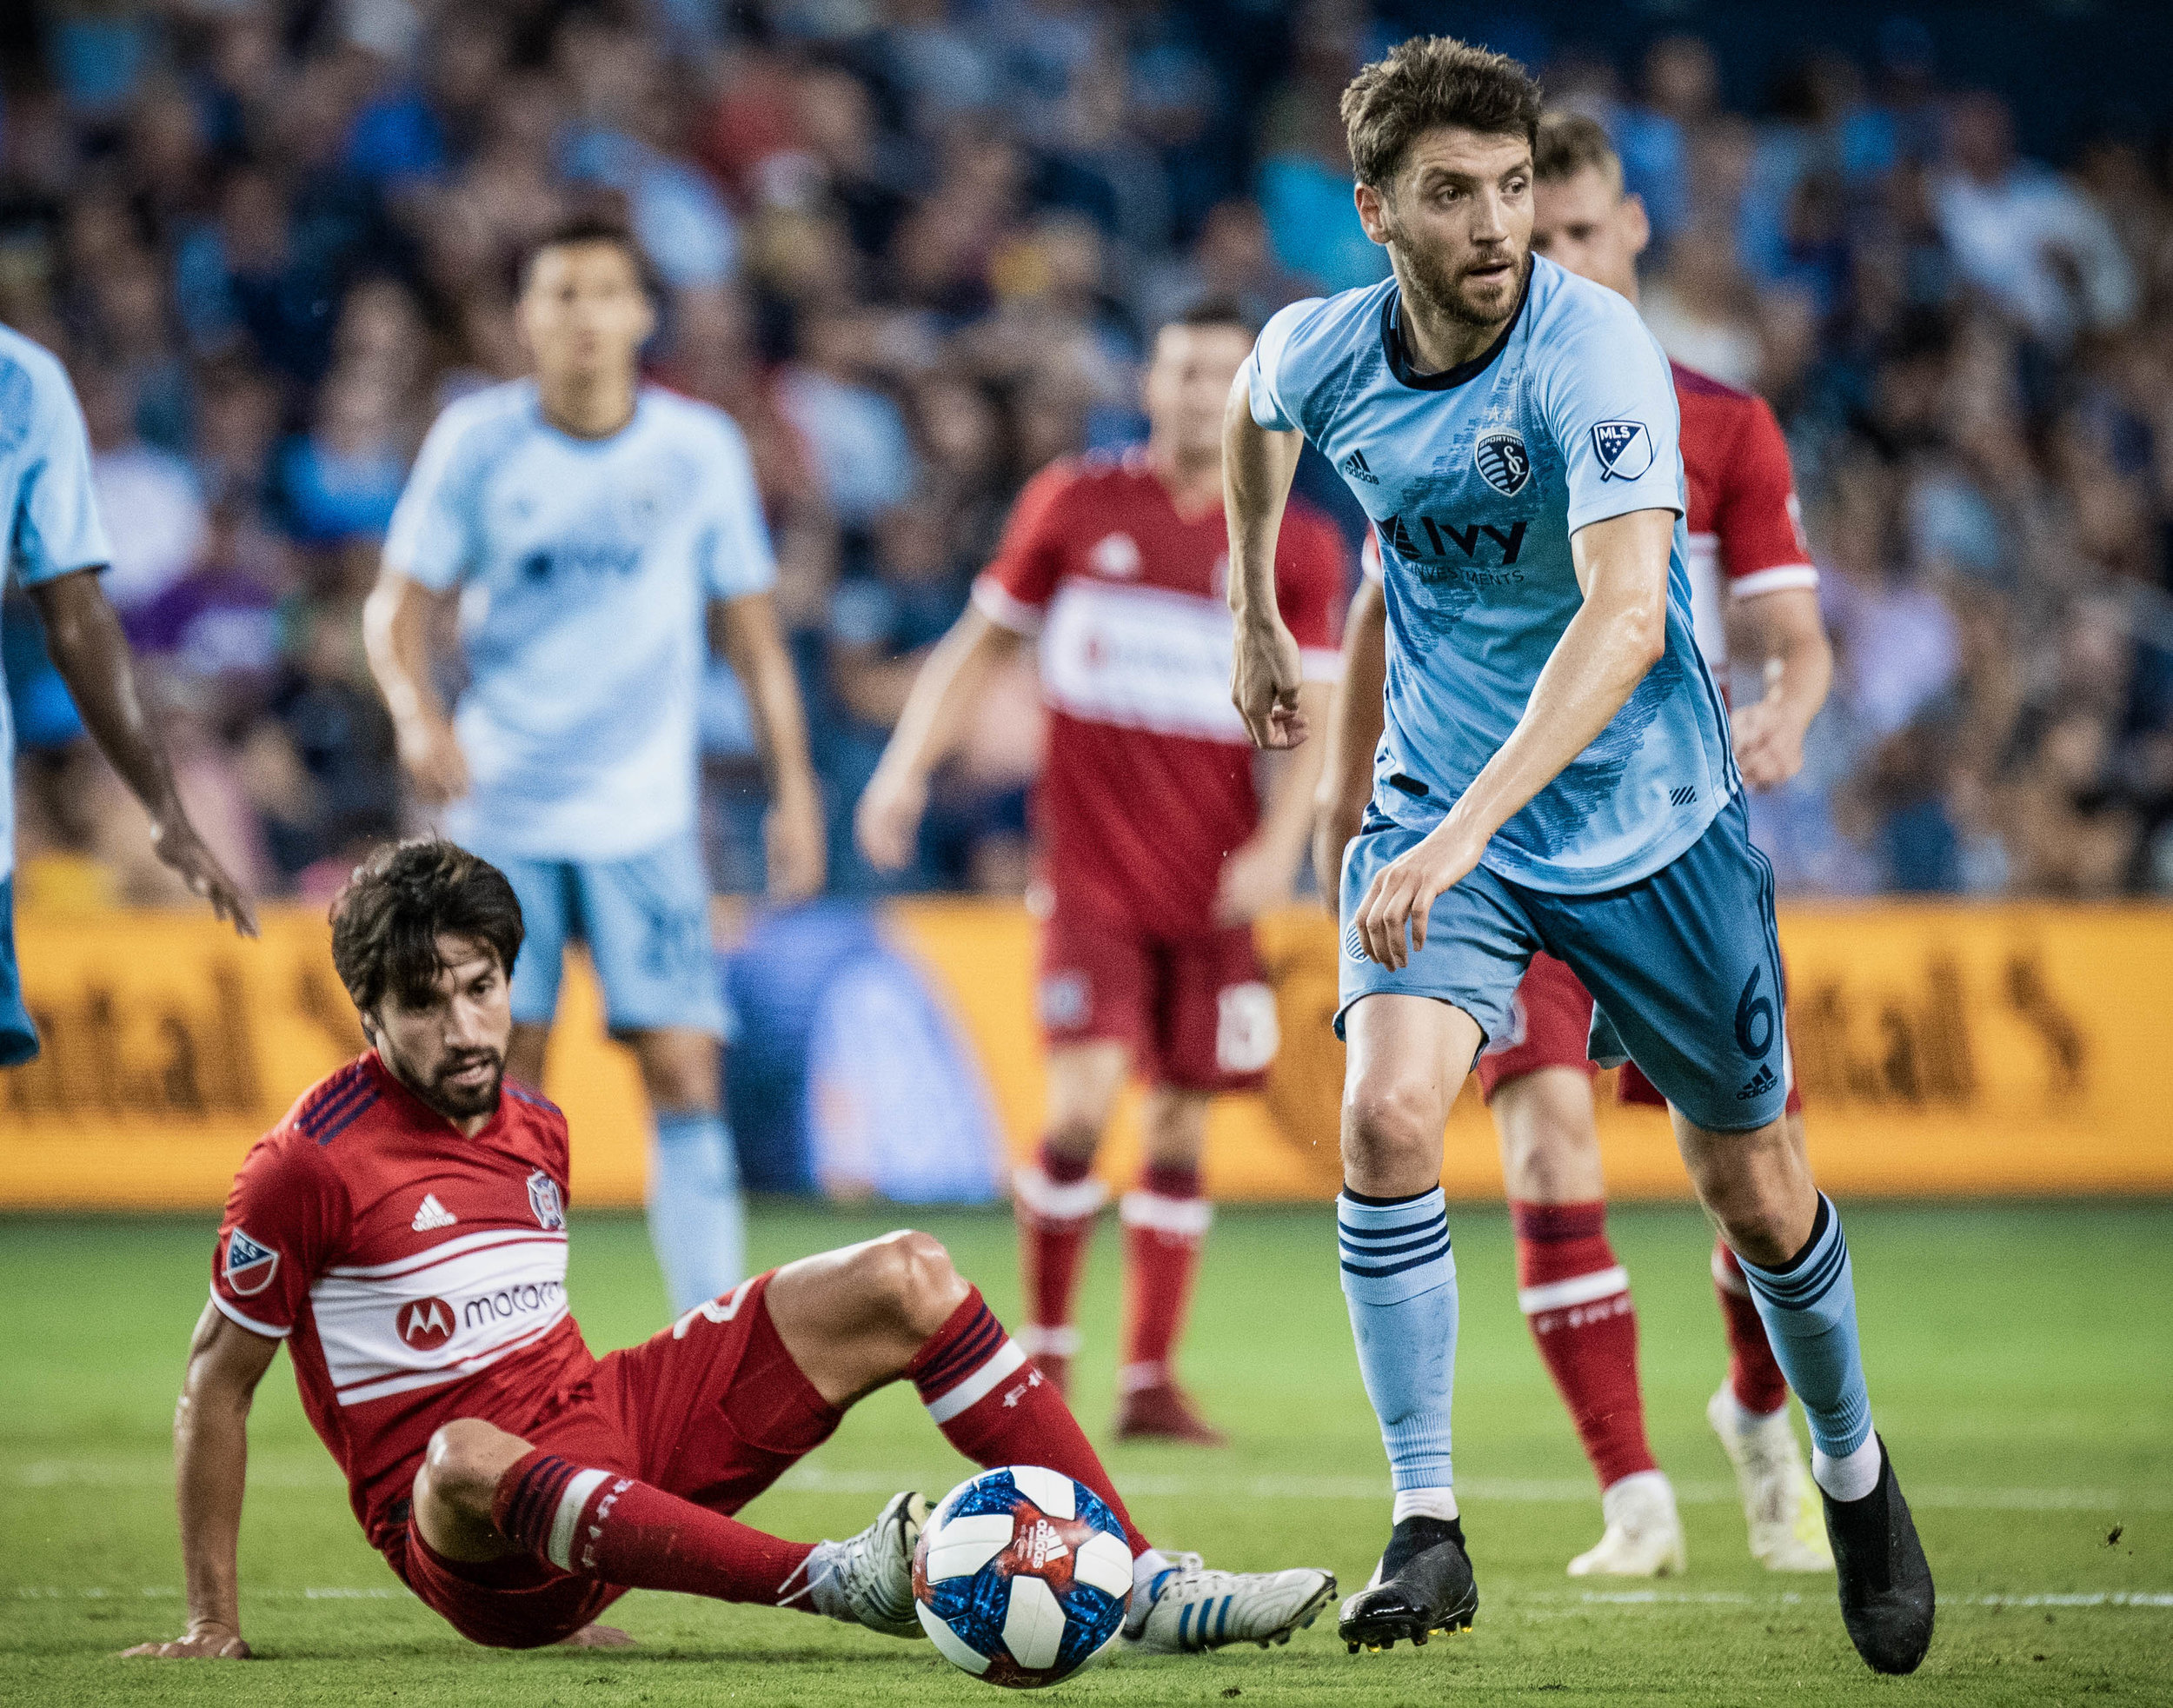 Ilie Sánchez (6) dribbles past a defender during the Sporting Kansas City vs. Chicago Fire match on Saturday, July 6, 2019 at Children's Mercy Park in Kansas City, Kansas. Sporting defeated the Fire 1-0.